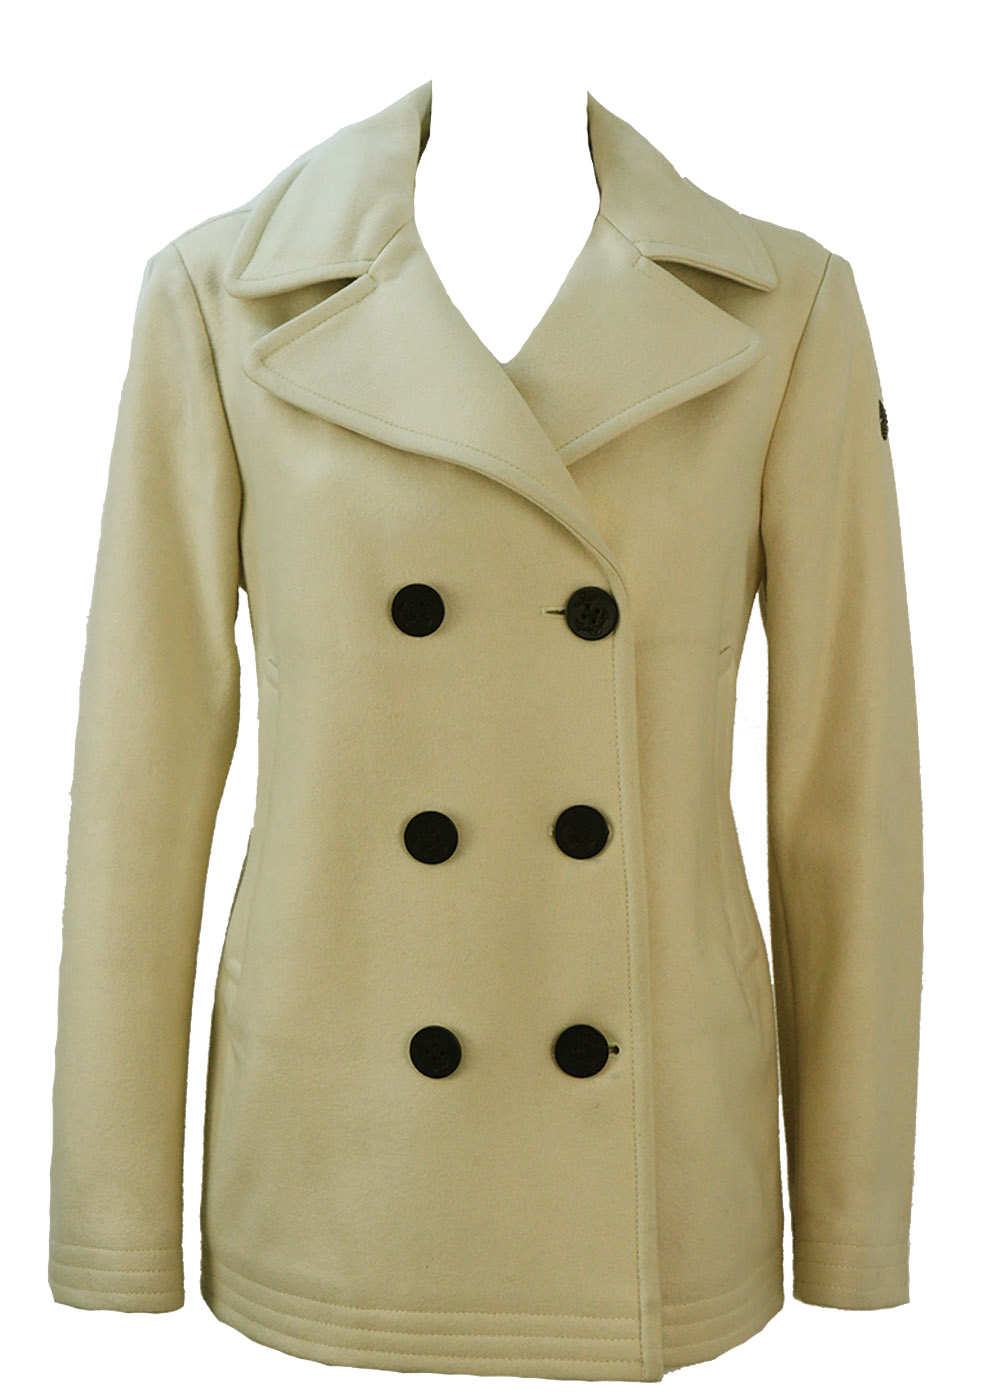 Marina Yachting Cream Double Breasted Wool Pea Coat M Reign Vintage